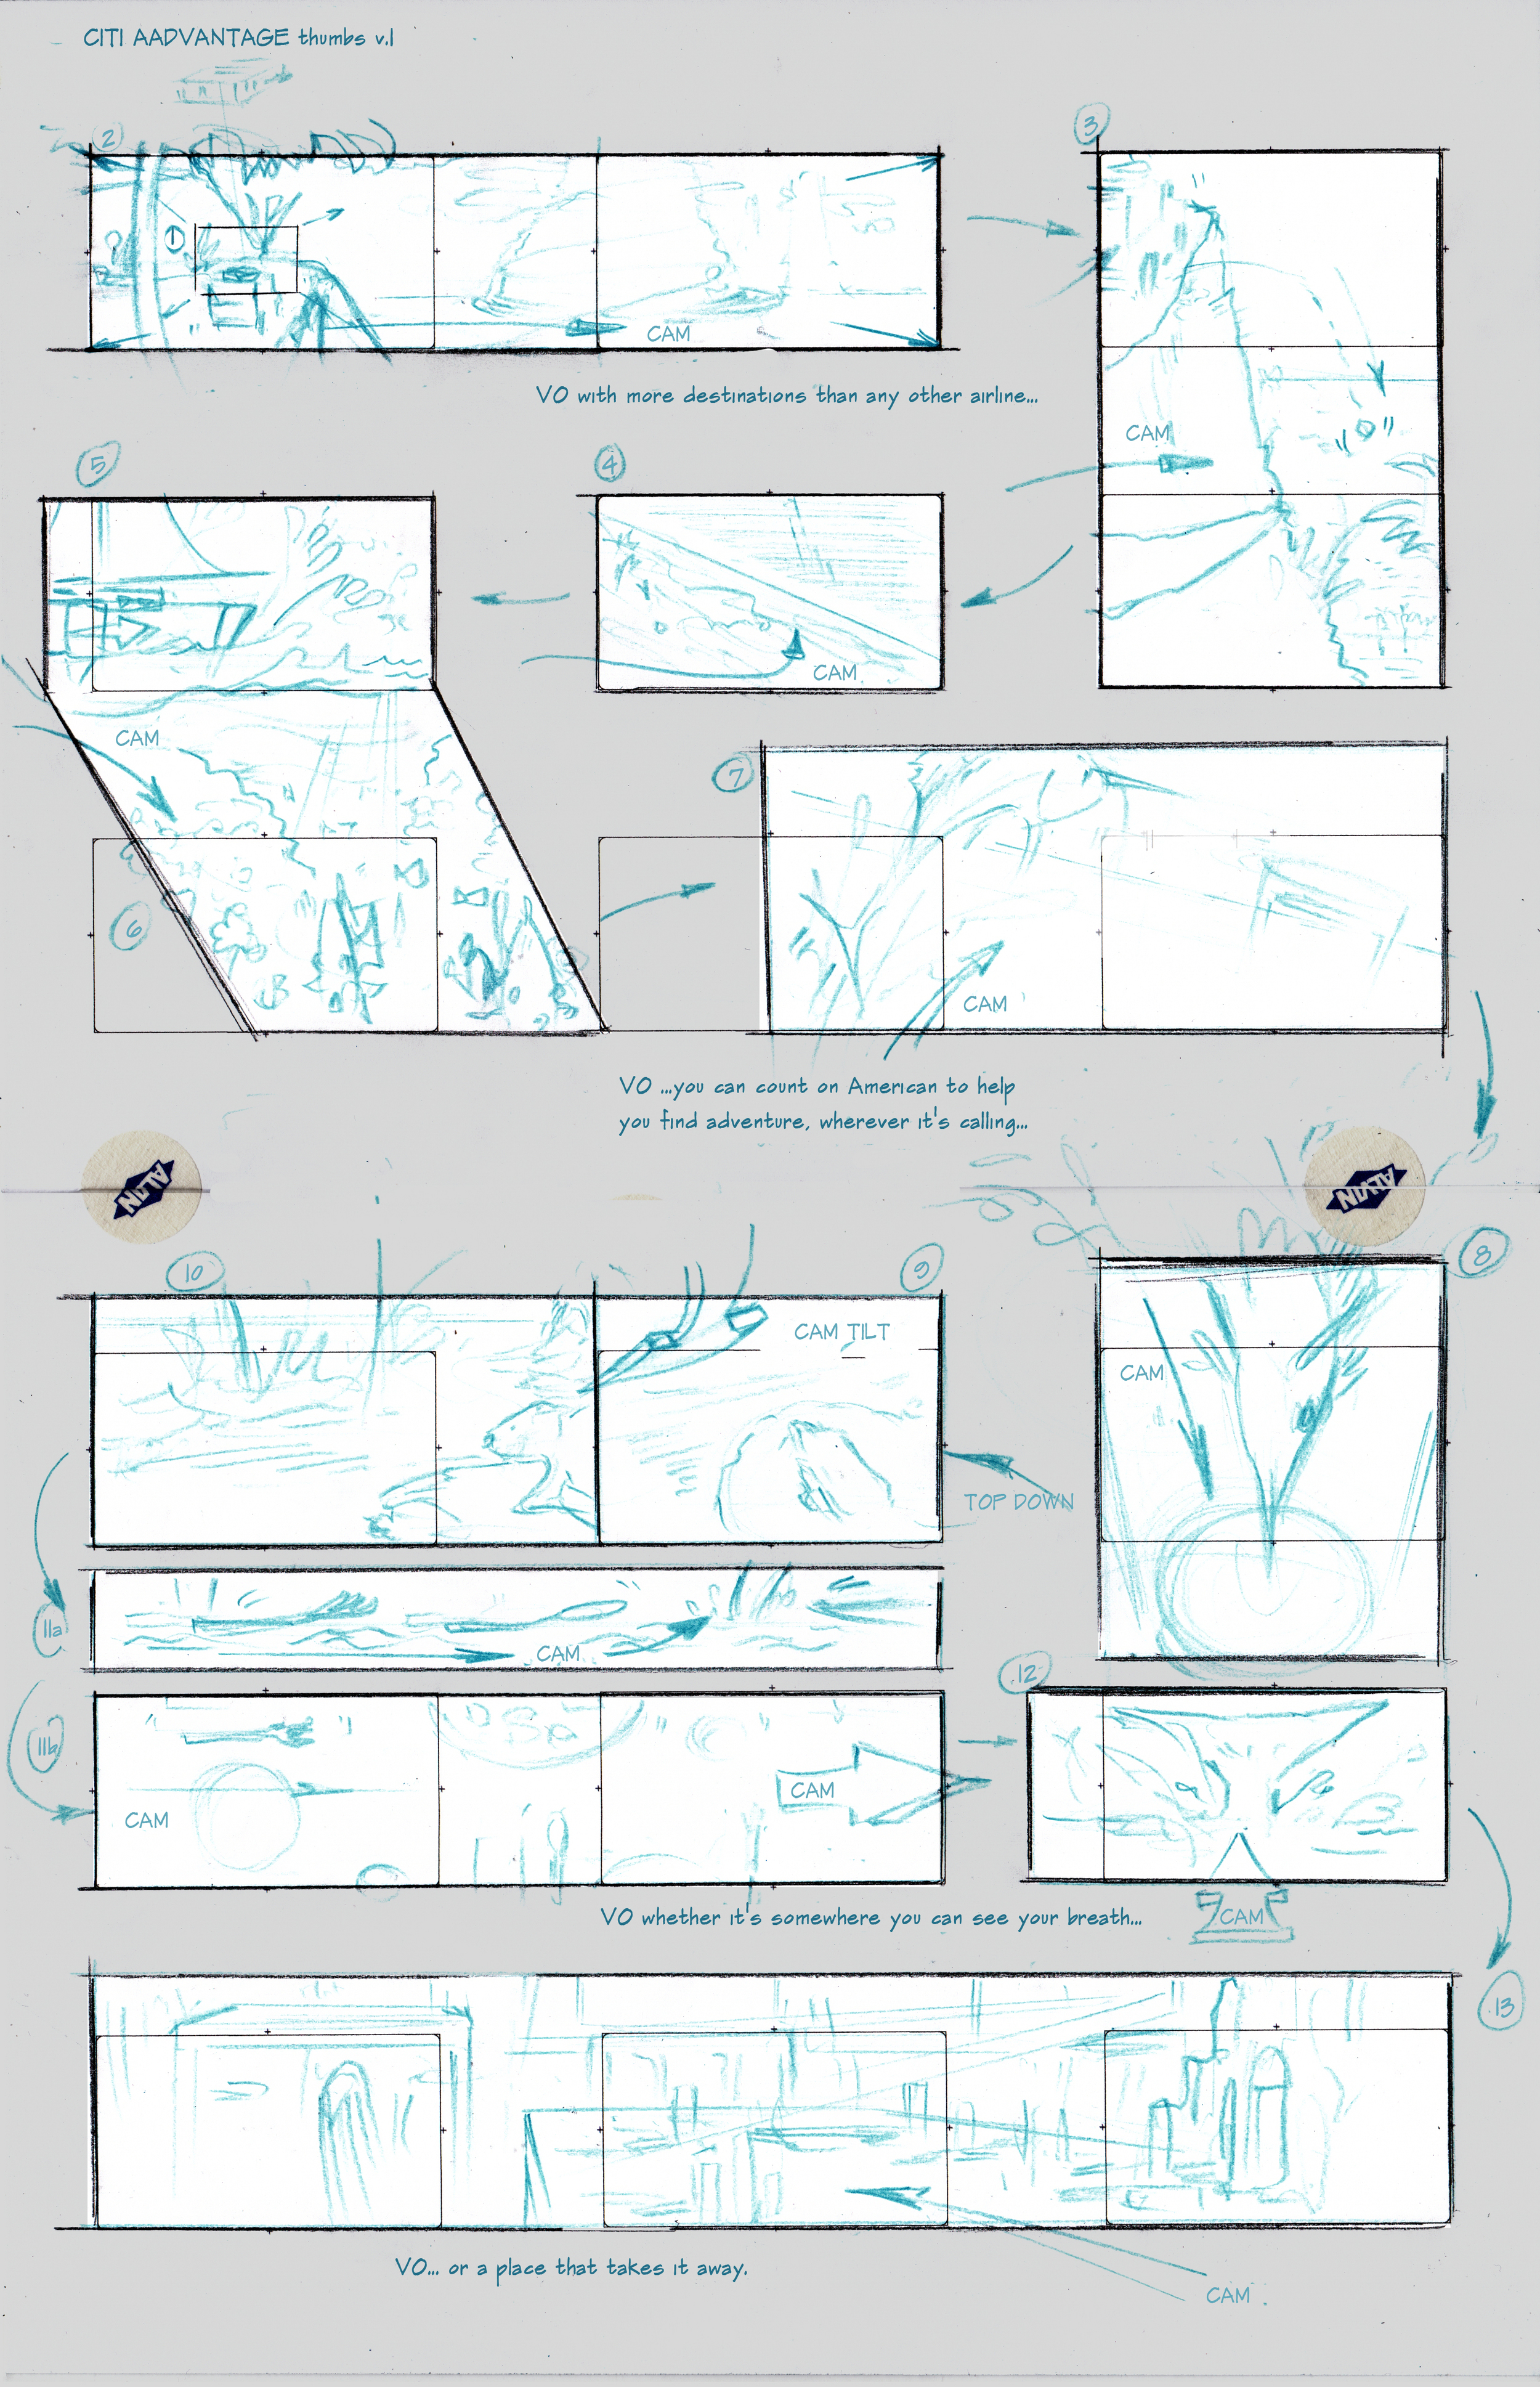 Thumbnails  are quick, small sketches that can later be developed into full storyboards.